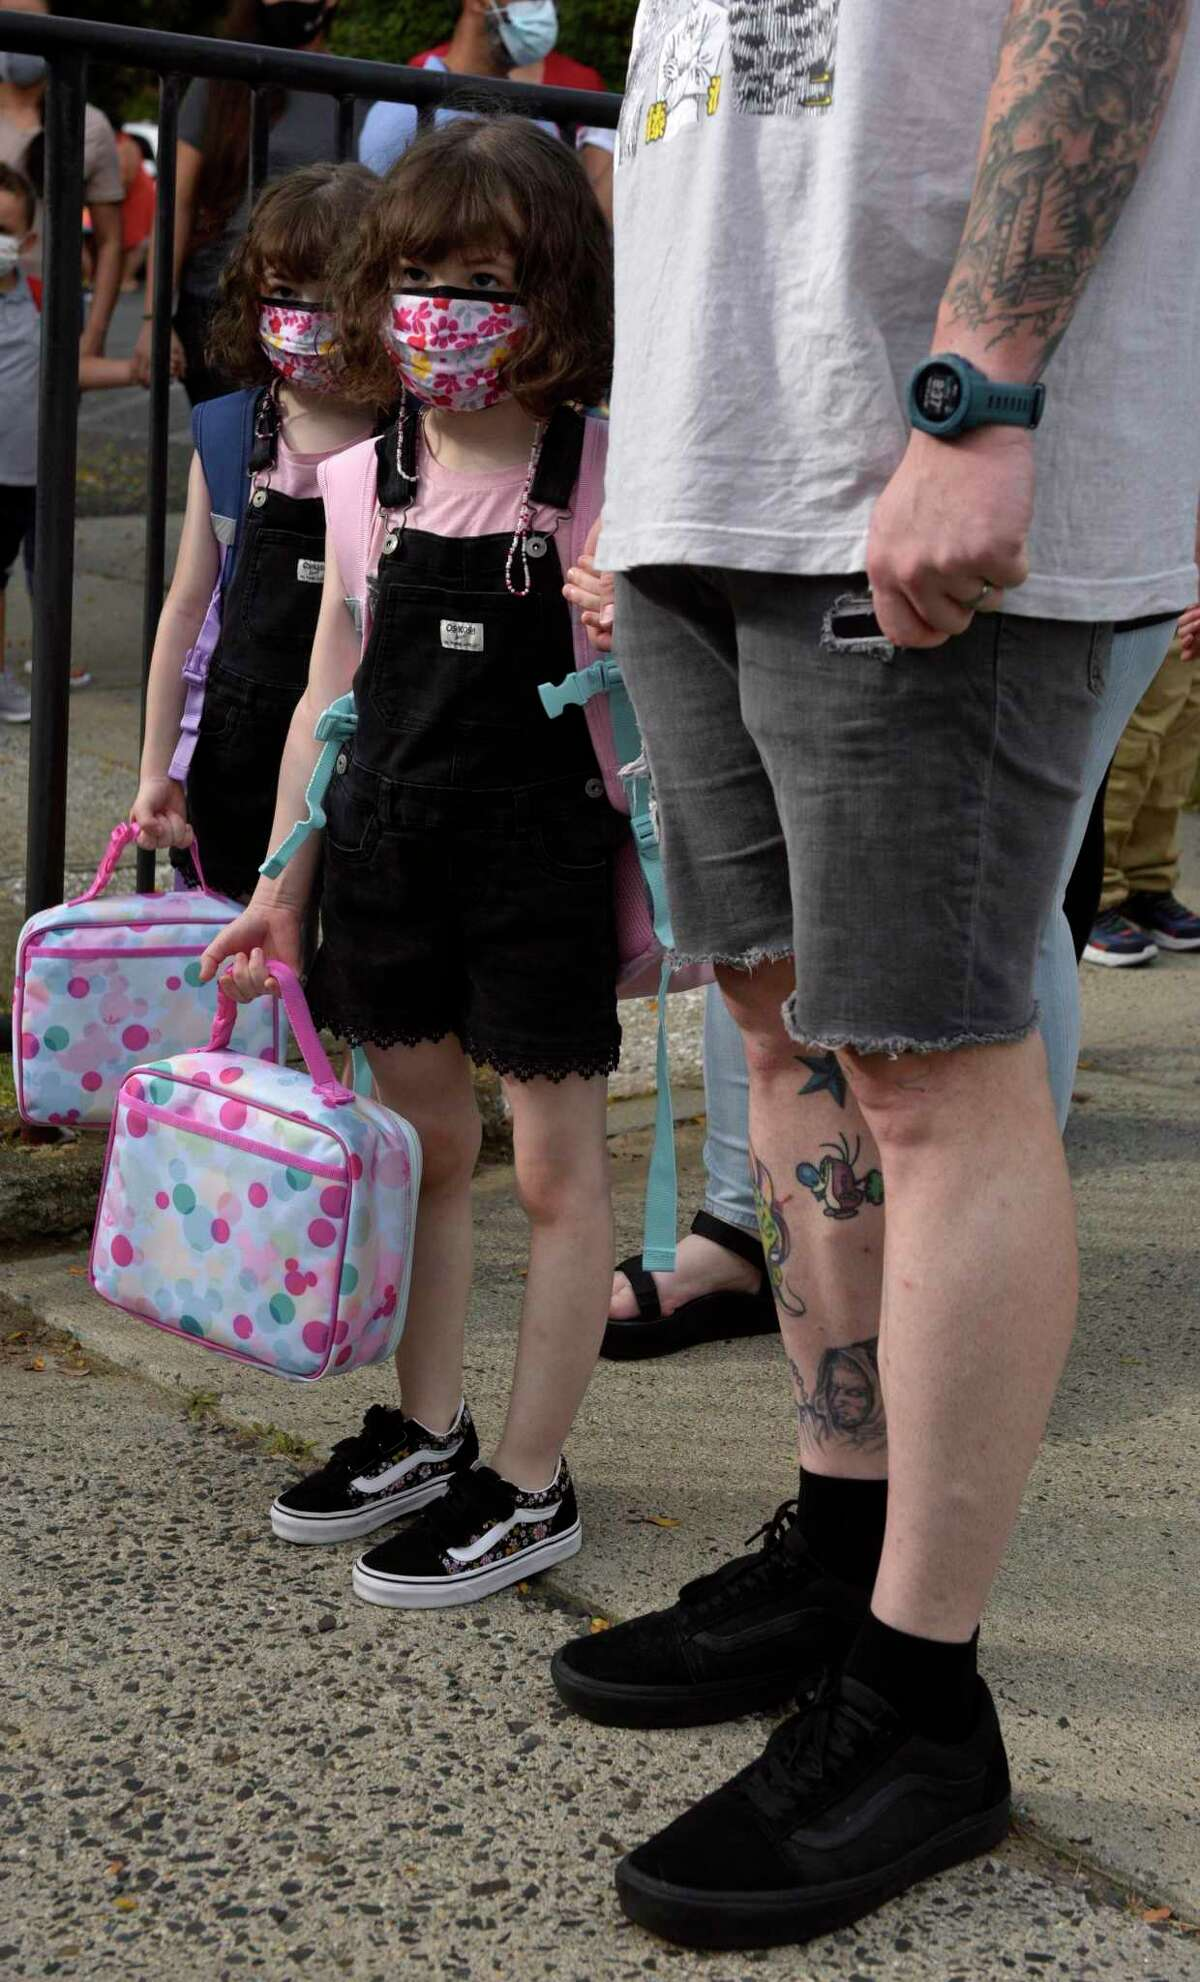 Twin sisters Lydia, left, and Lilith Copland stand with their father Ian Copland while being dropped off for the first day of kindergarten at the Danbury Primary Center in Brookfield. Monday, August 30, 2021, Brookfield, Conn. About 200 Danbury kindergartners are attending the school in Brookfield this year due to space constrictions in the elementary schools.